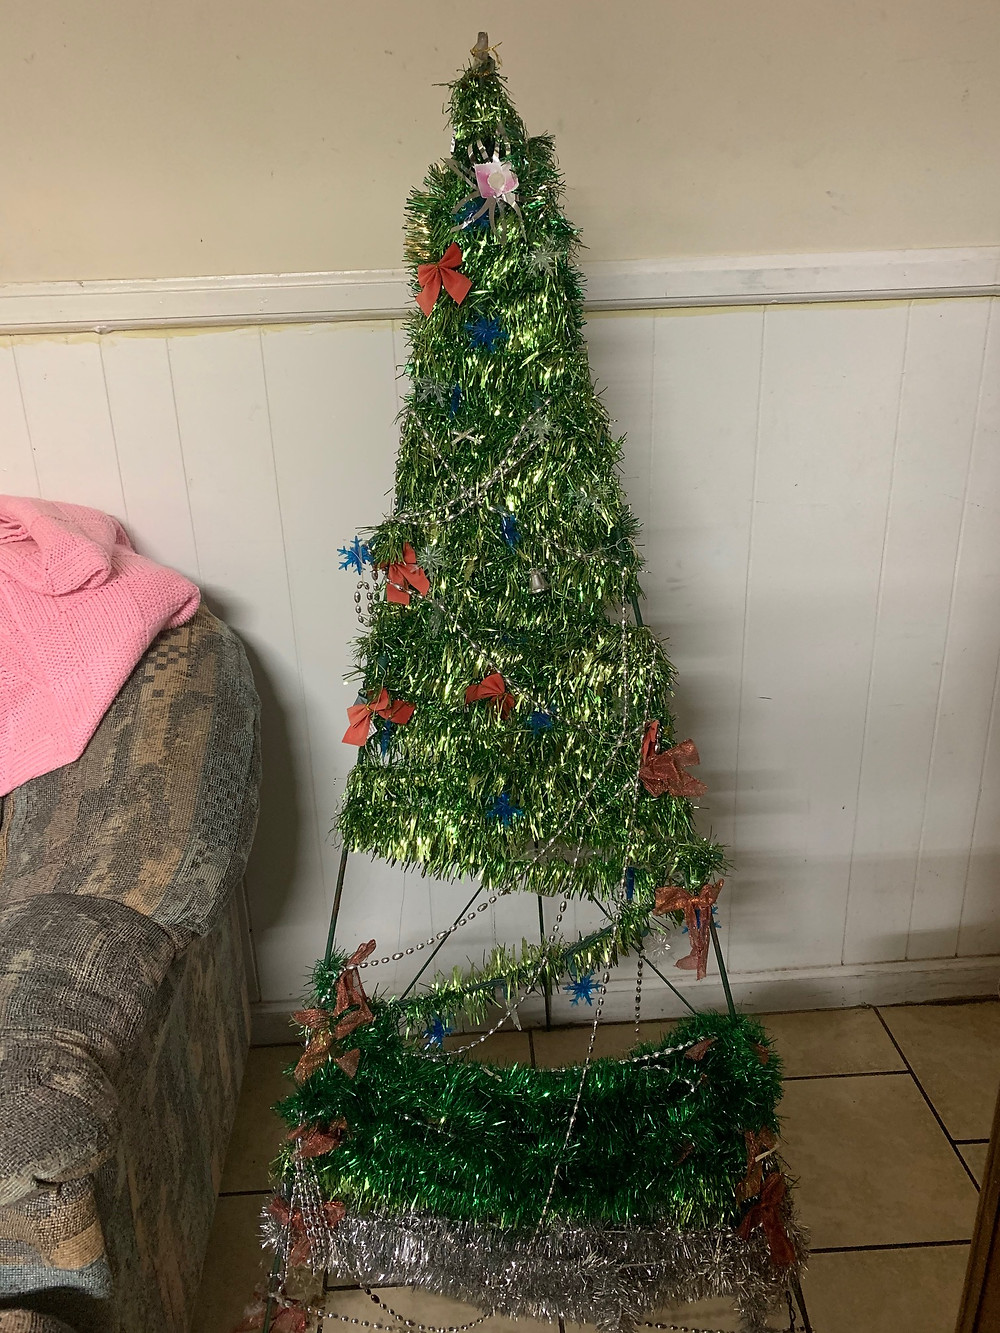 Decorate the Christmas tree.